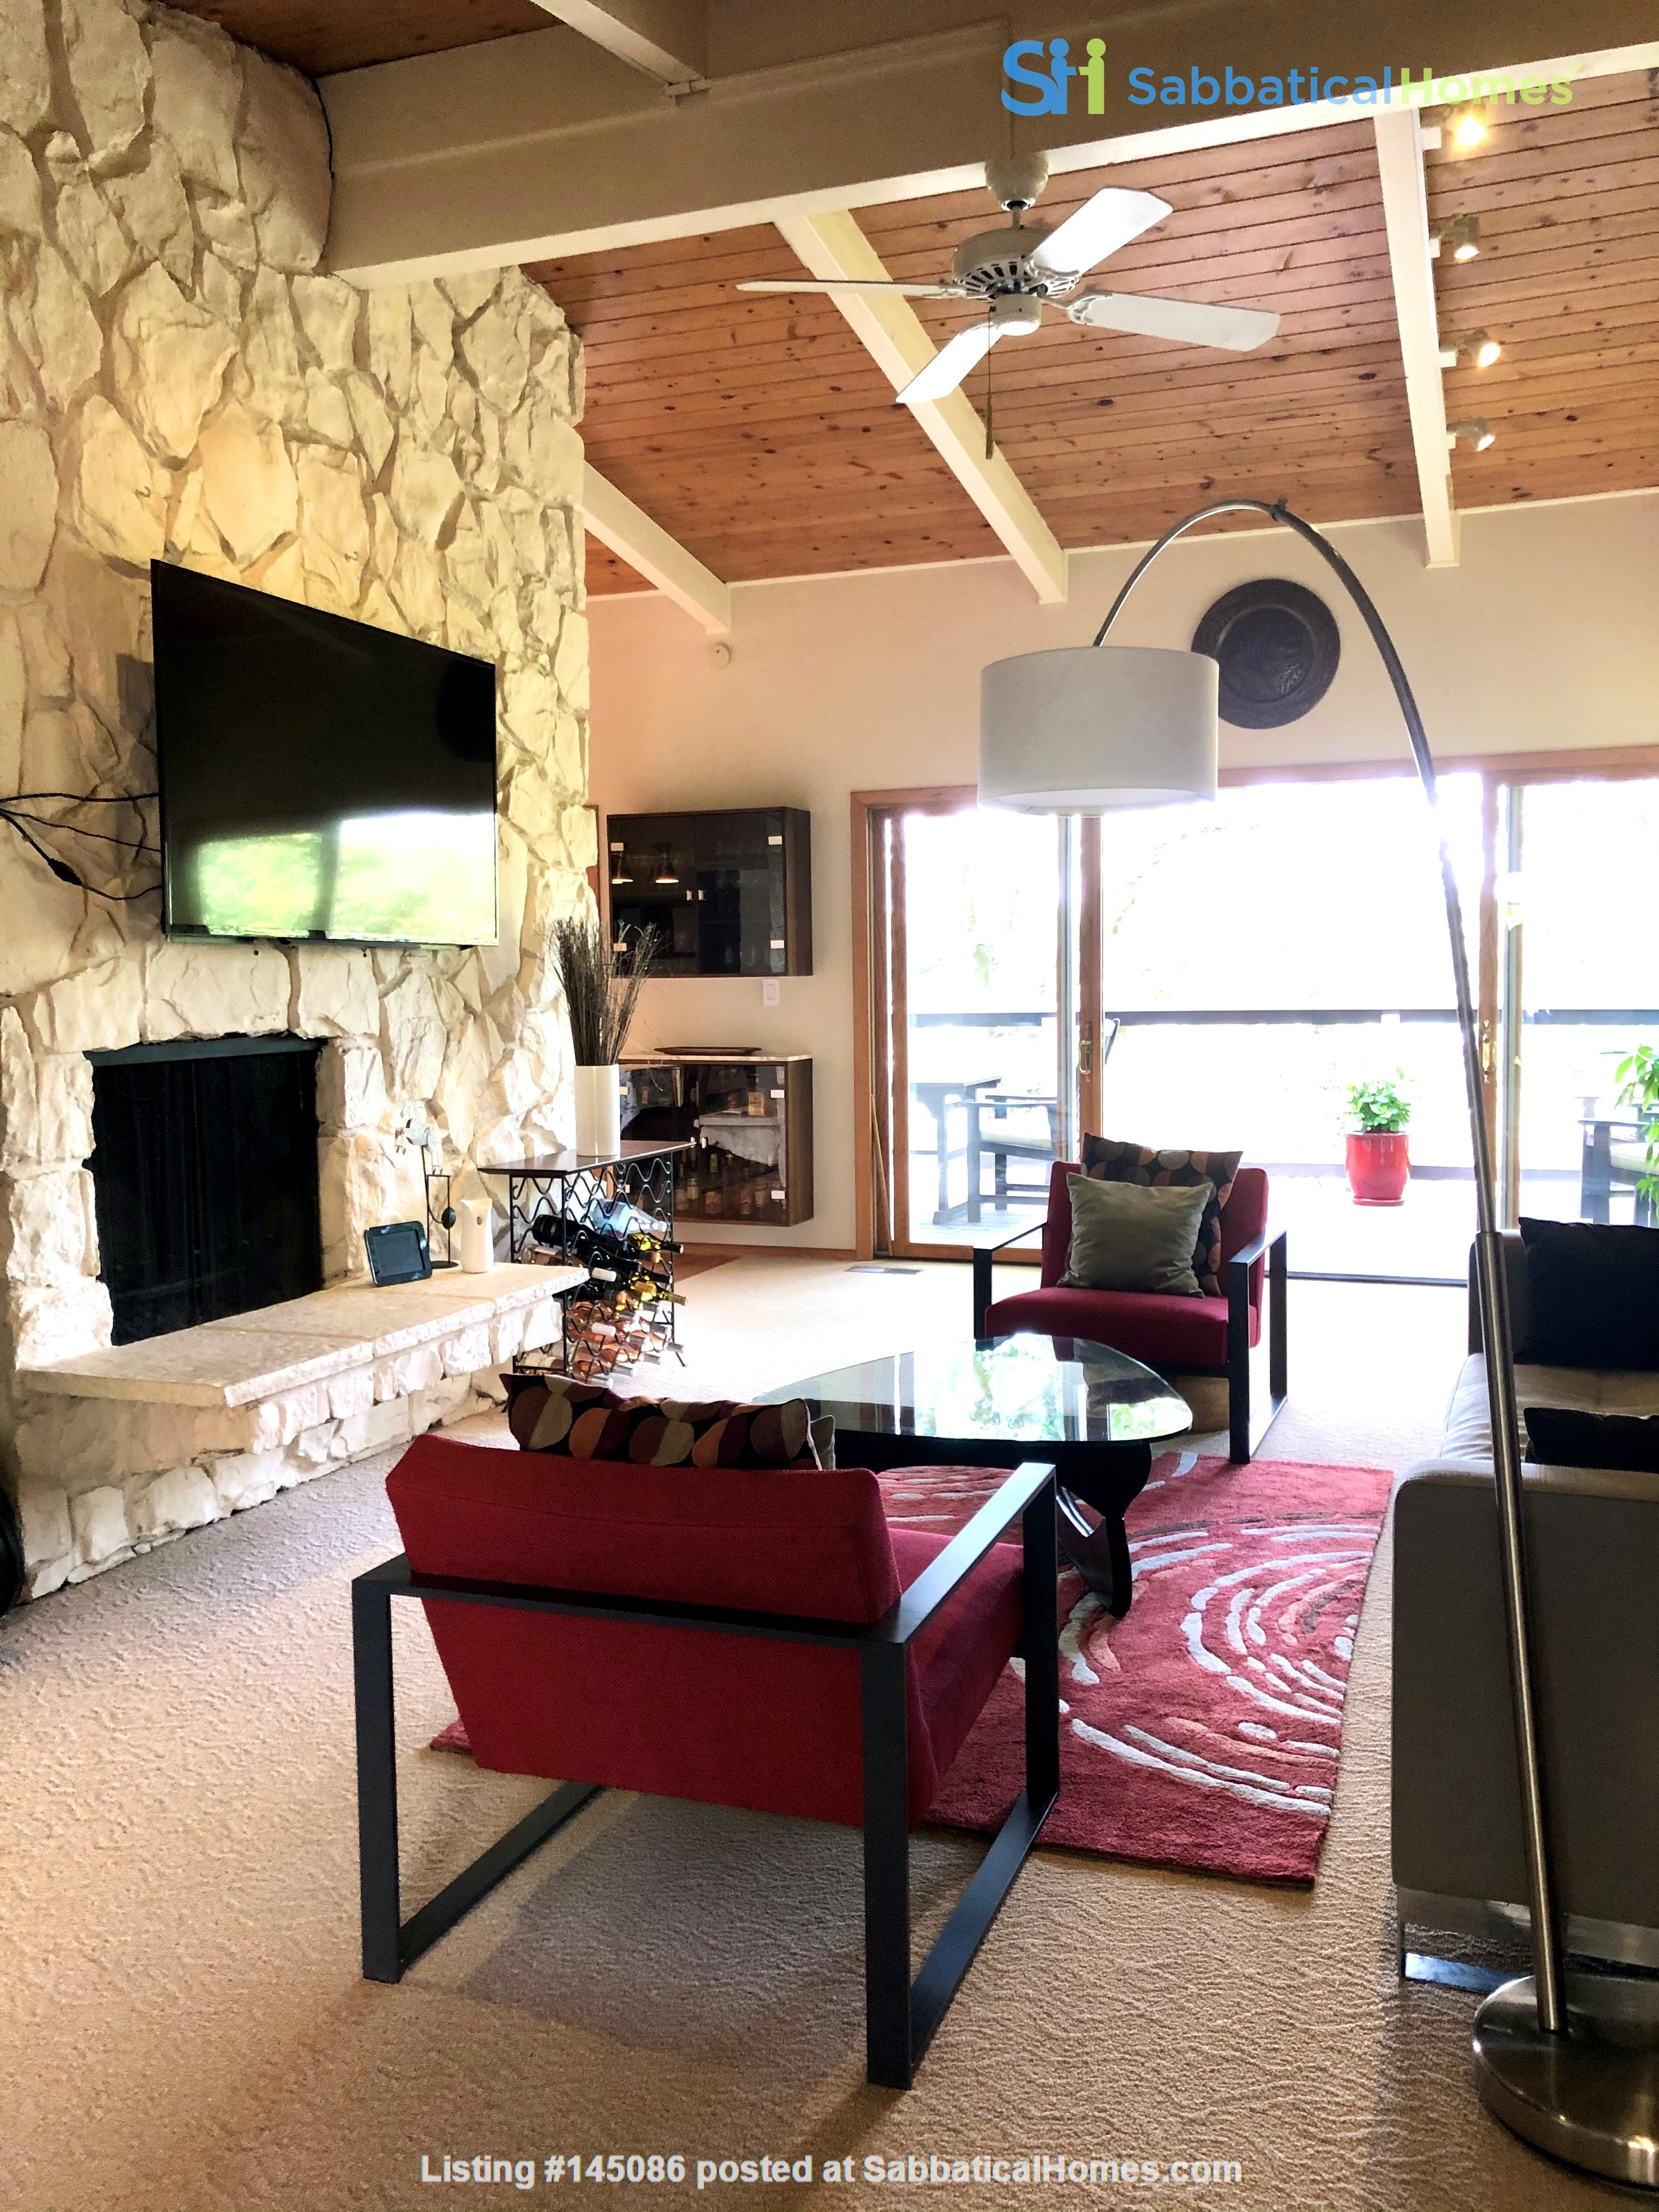 Spacious, Level-In, Quite Home for year lease in the Oakland Hills, CA Home Rental in Oakland, California, United States 2